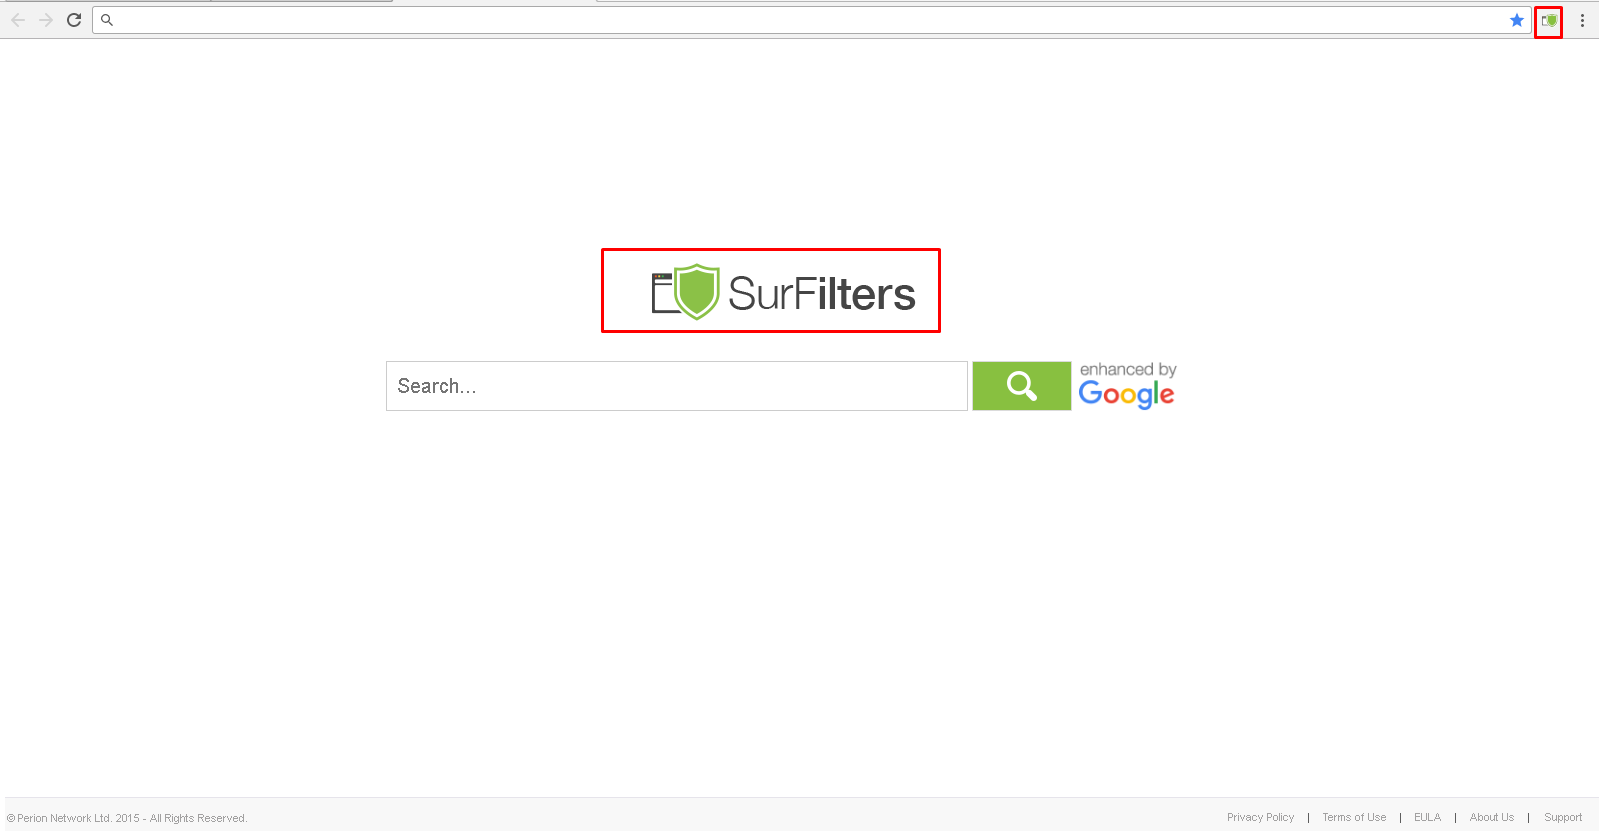 surfilters